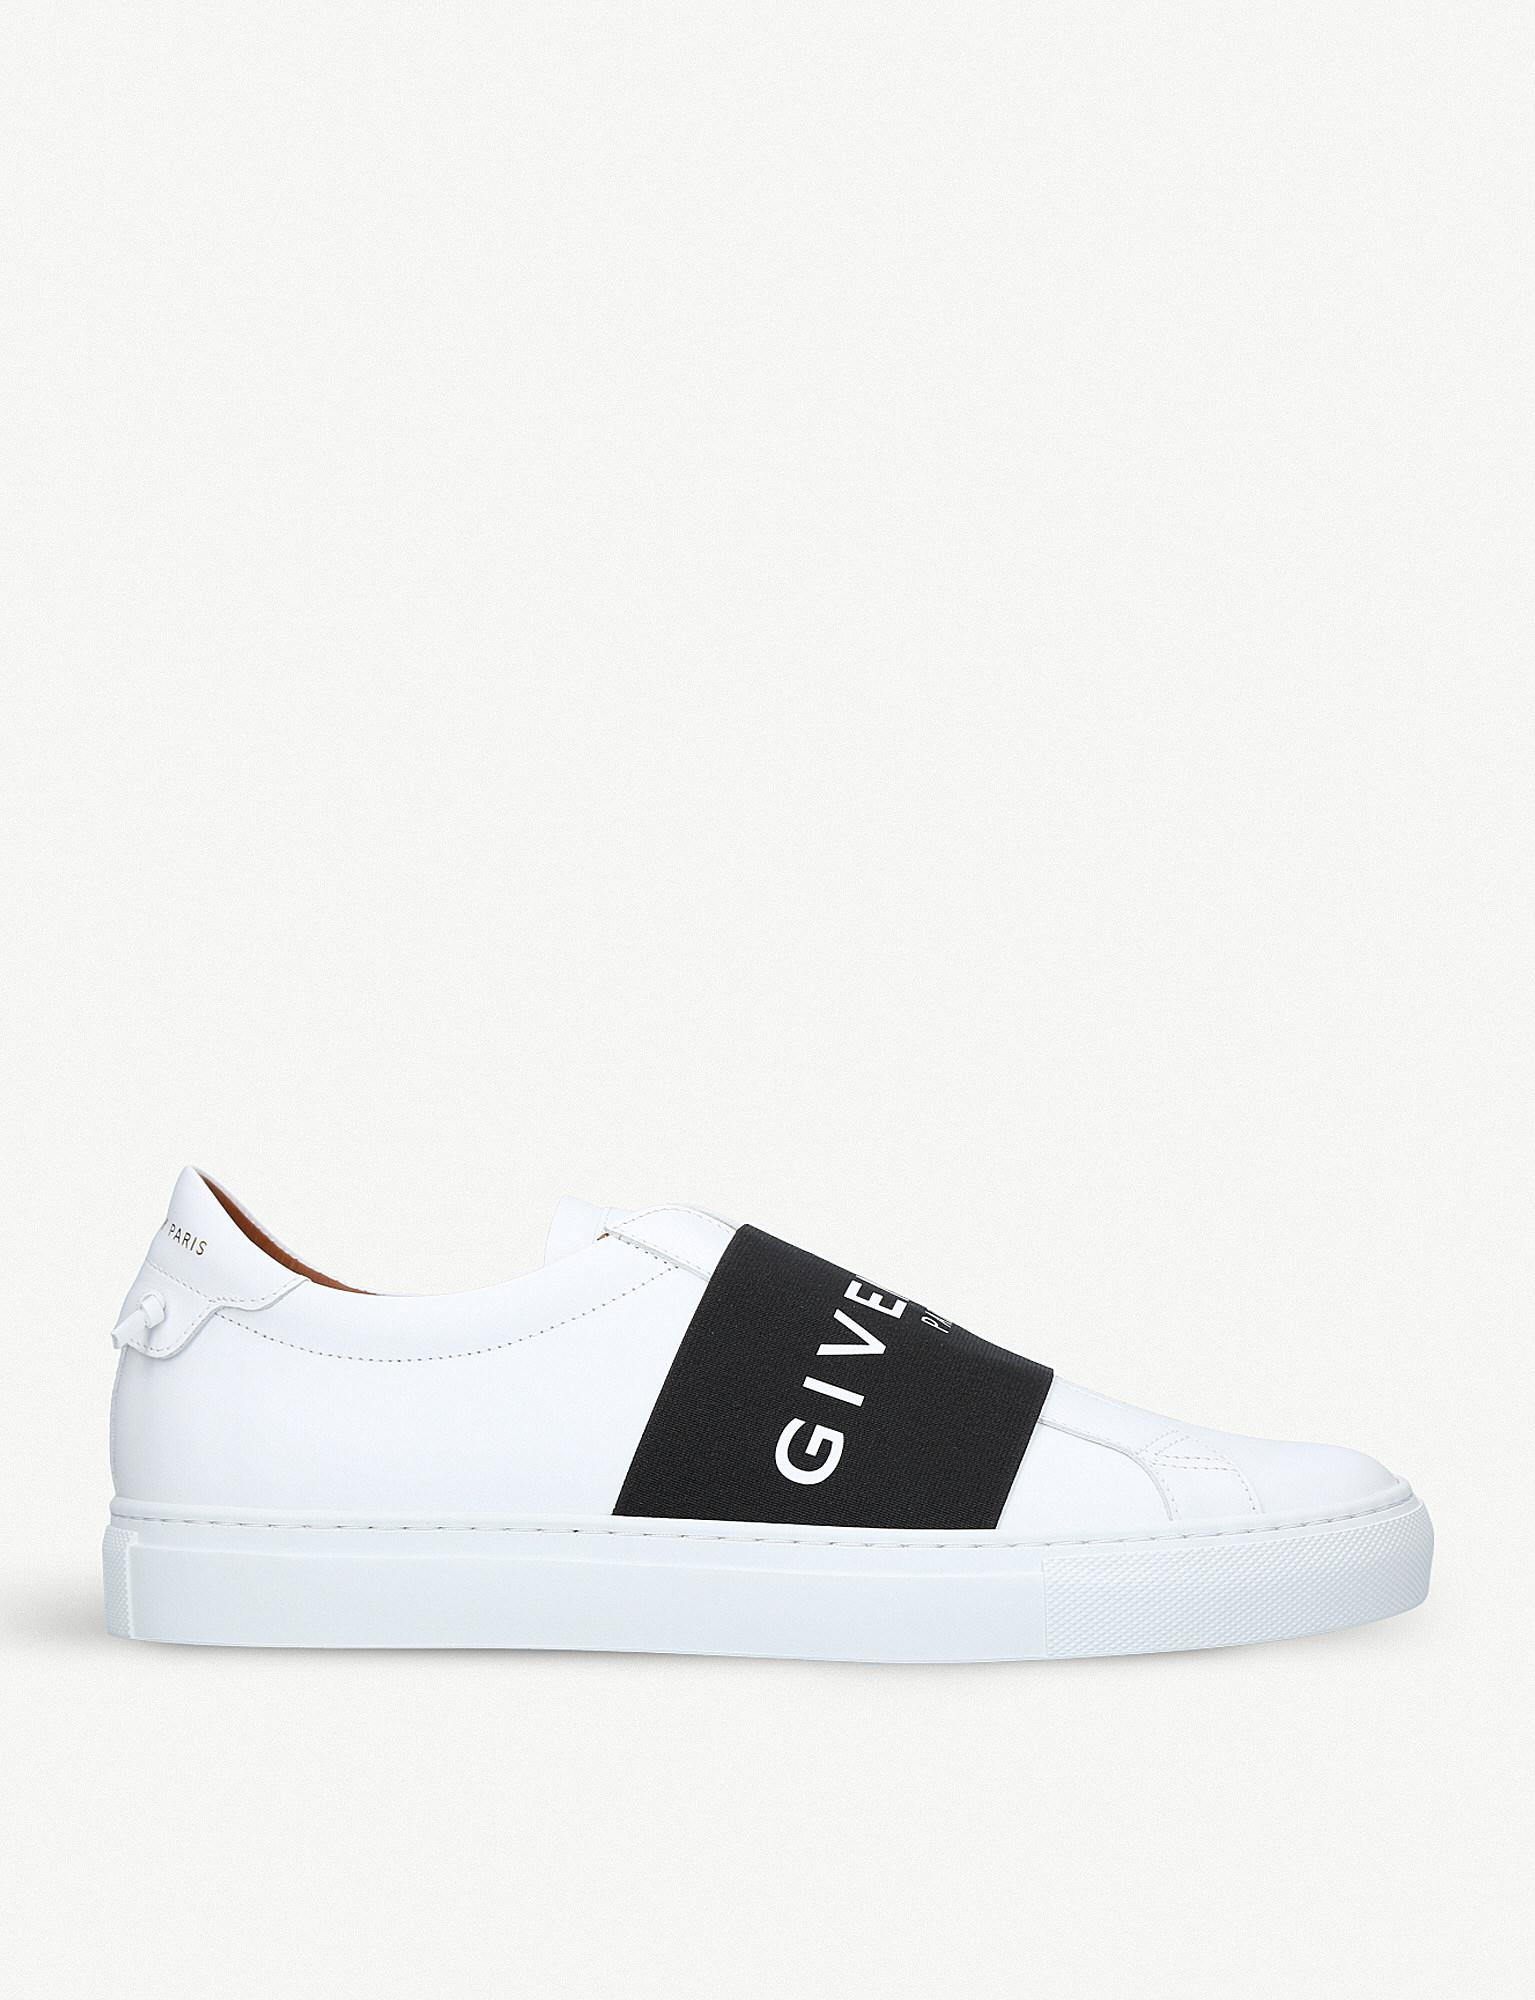 Givenchy Leather Trainers zcFaHmN